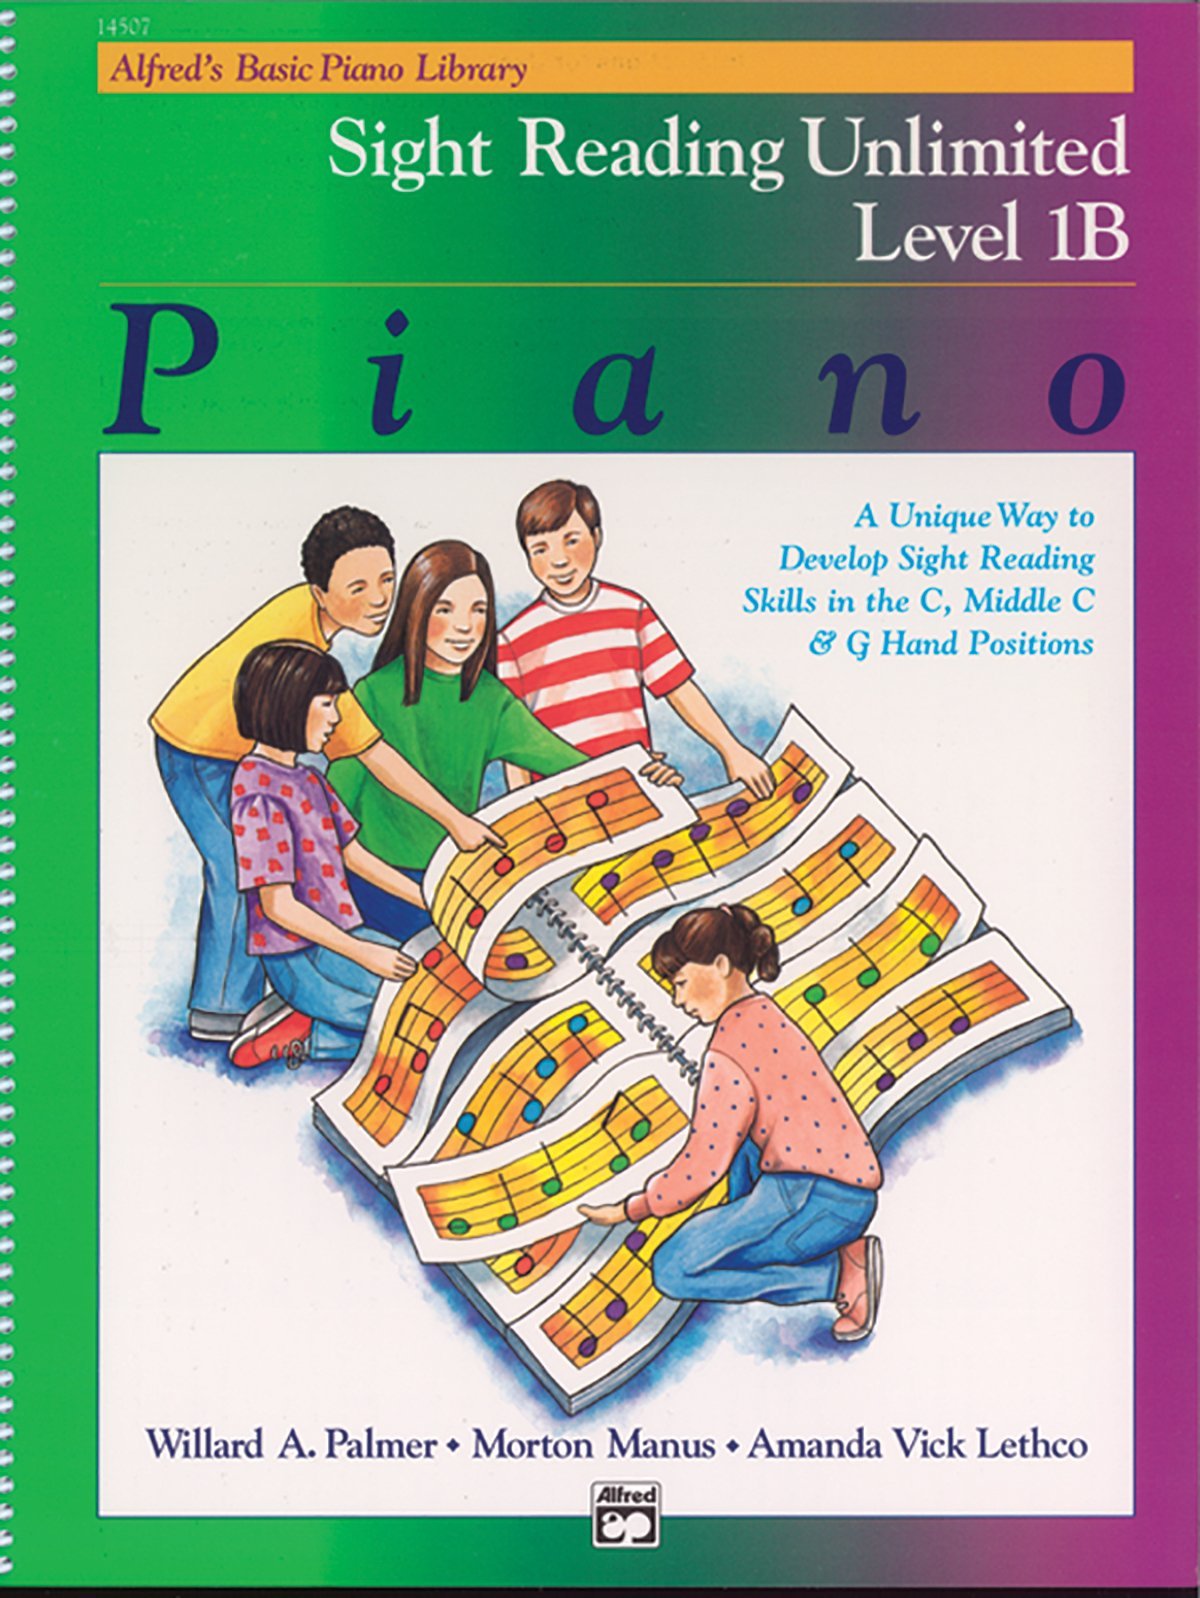 Alfred's Basic Piano Library Sight Reading Unlimited, Bk 1B: A Unique Way to Develop Sight Reading Skills in the C, Middle C and G Hand Positions, Comb Bound Book